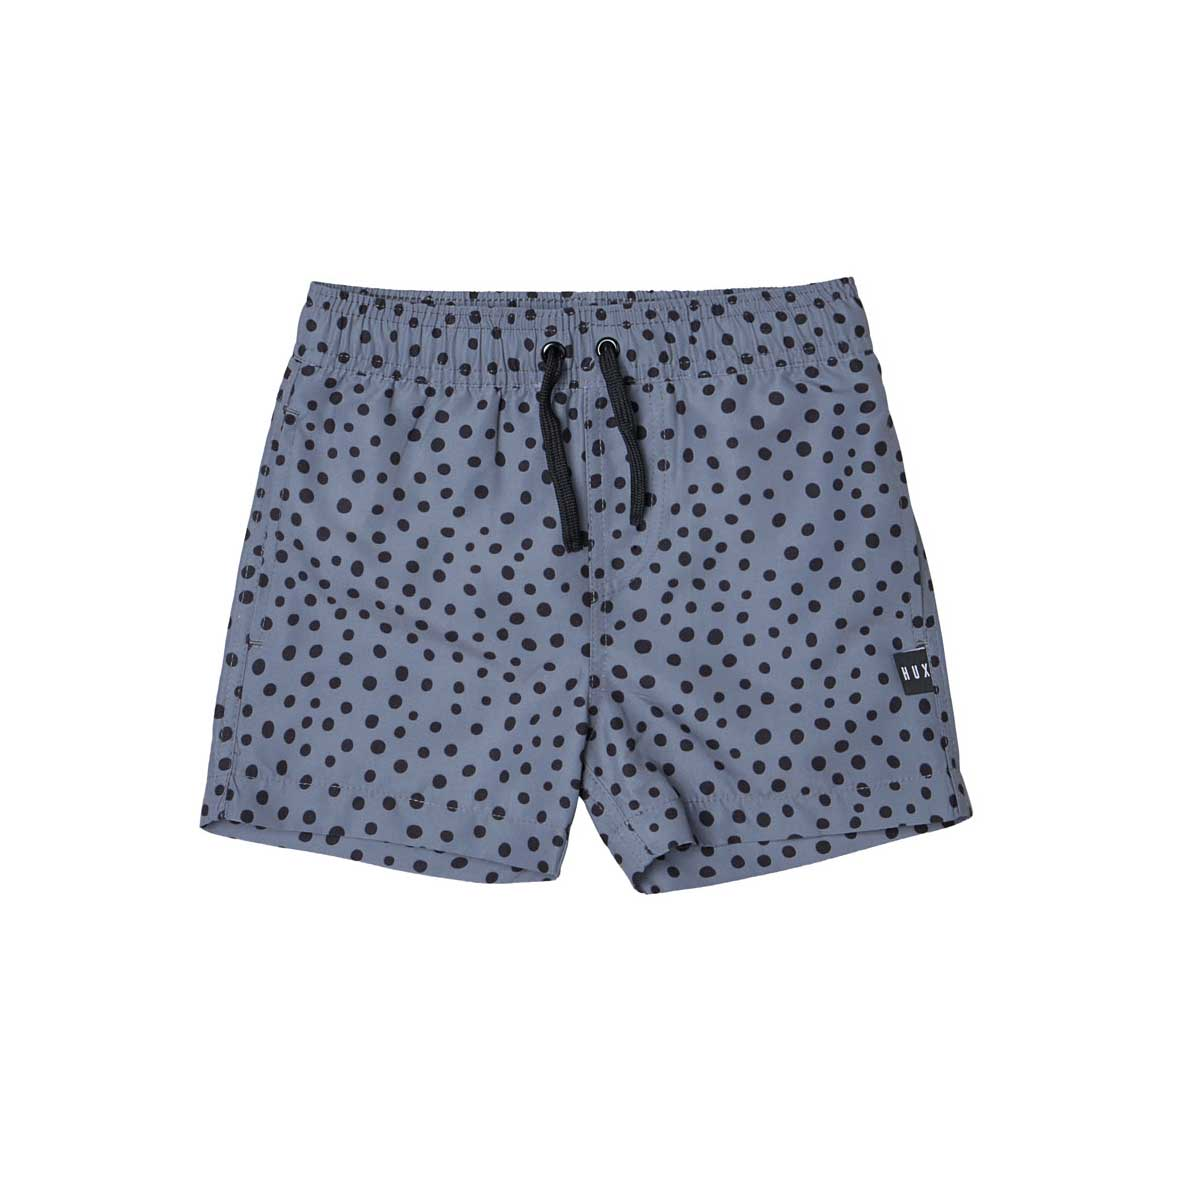 Deep Blue Board Shorts